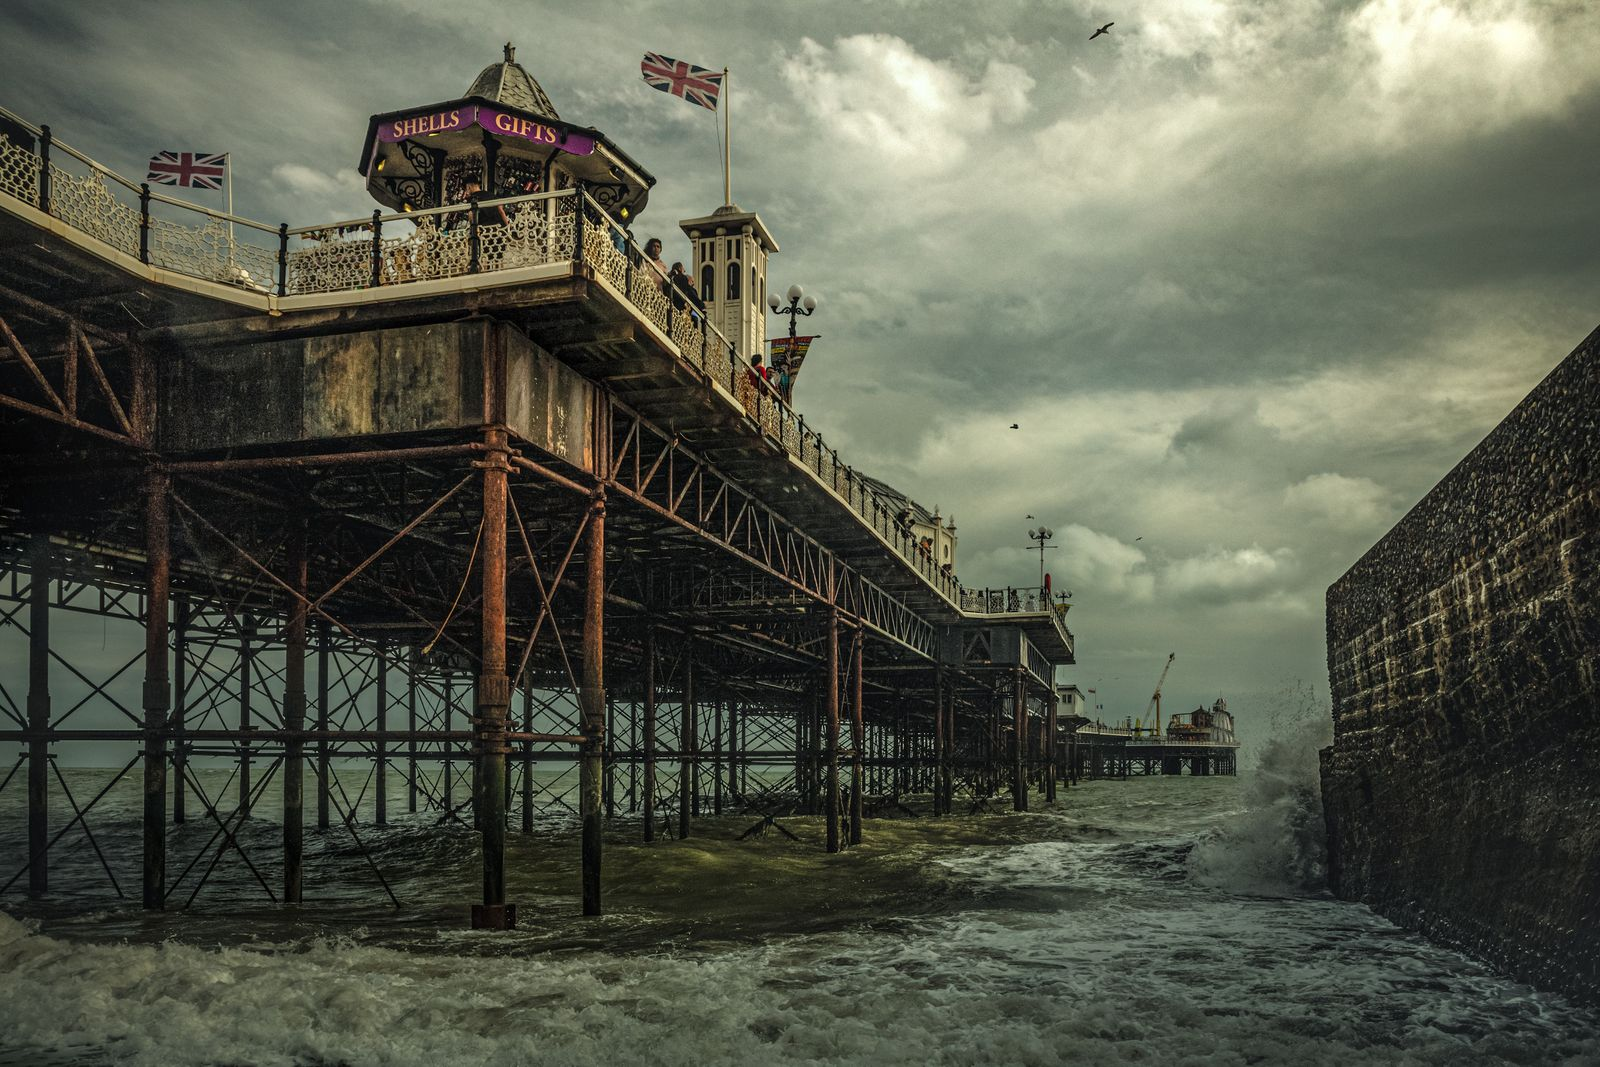 1 - Overall Winner - Michael Marsh - The Brighton Palace Pier - High